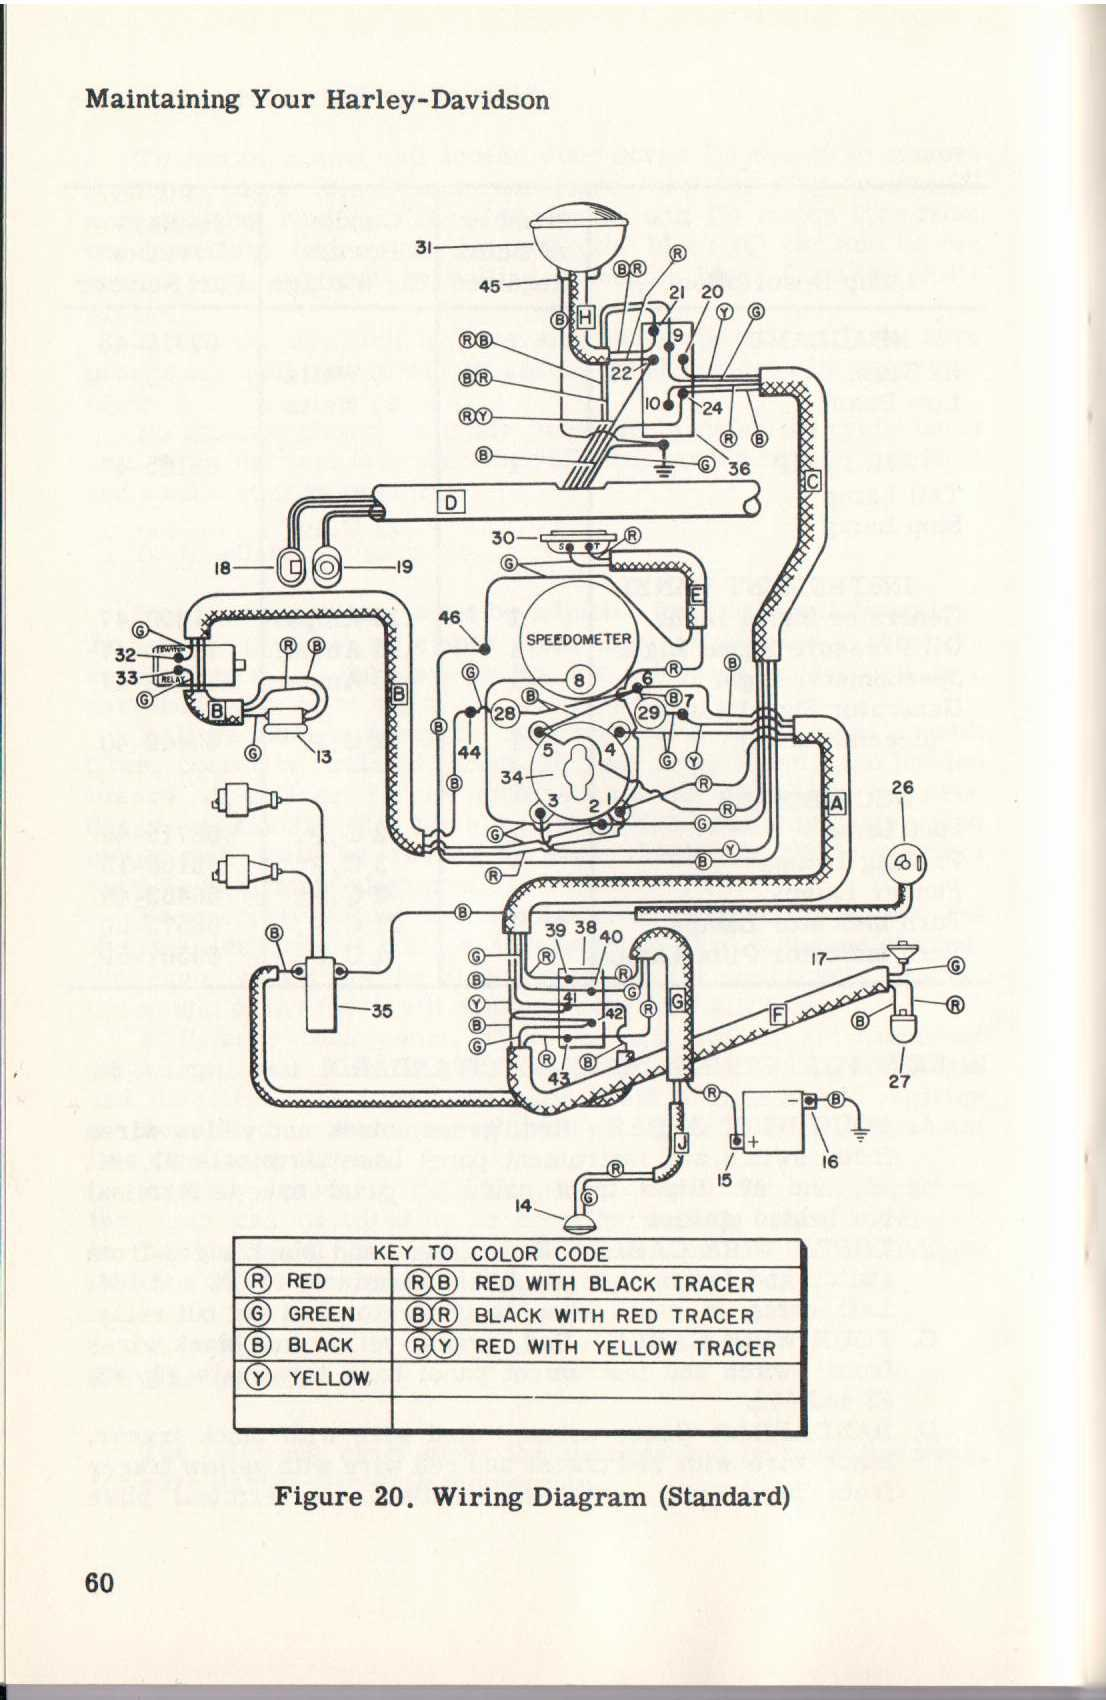 Wiring Diagram For 64 Flh